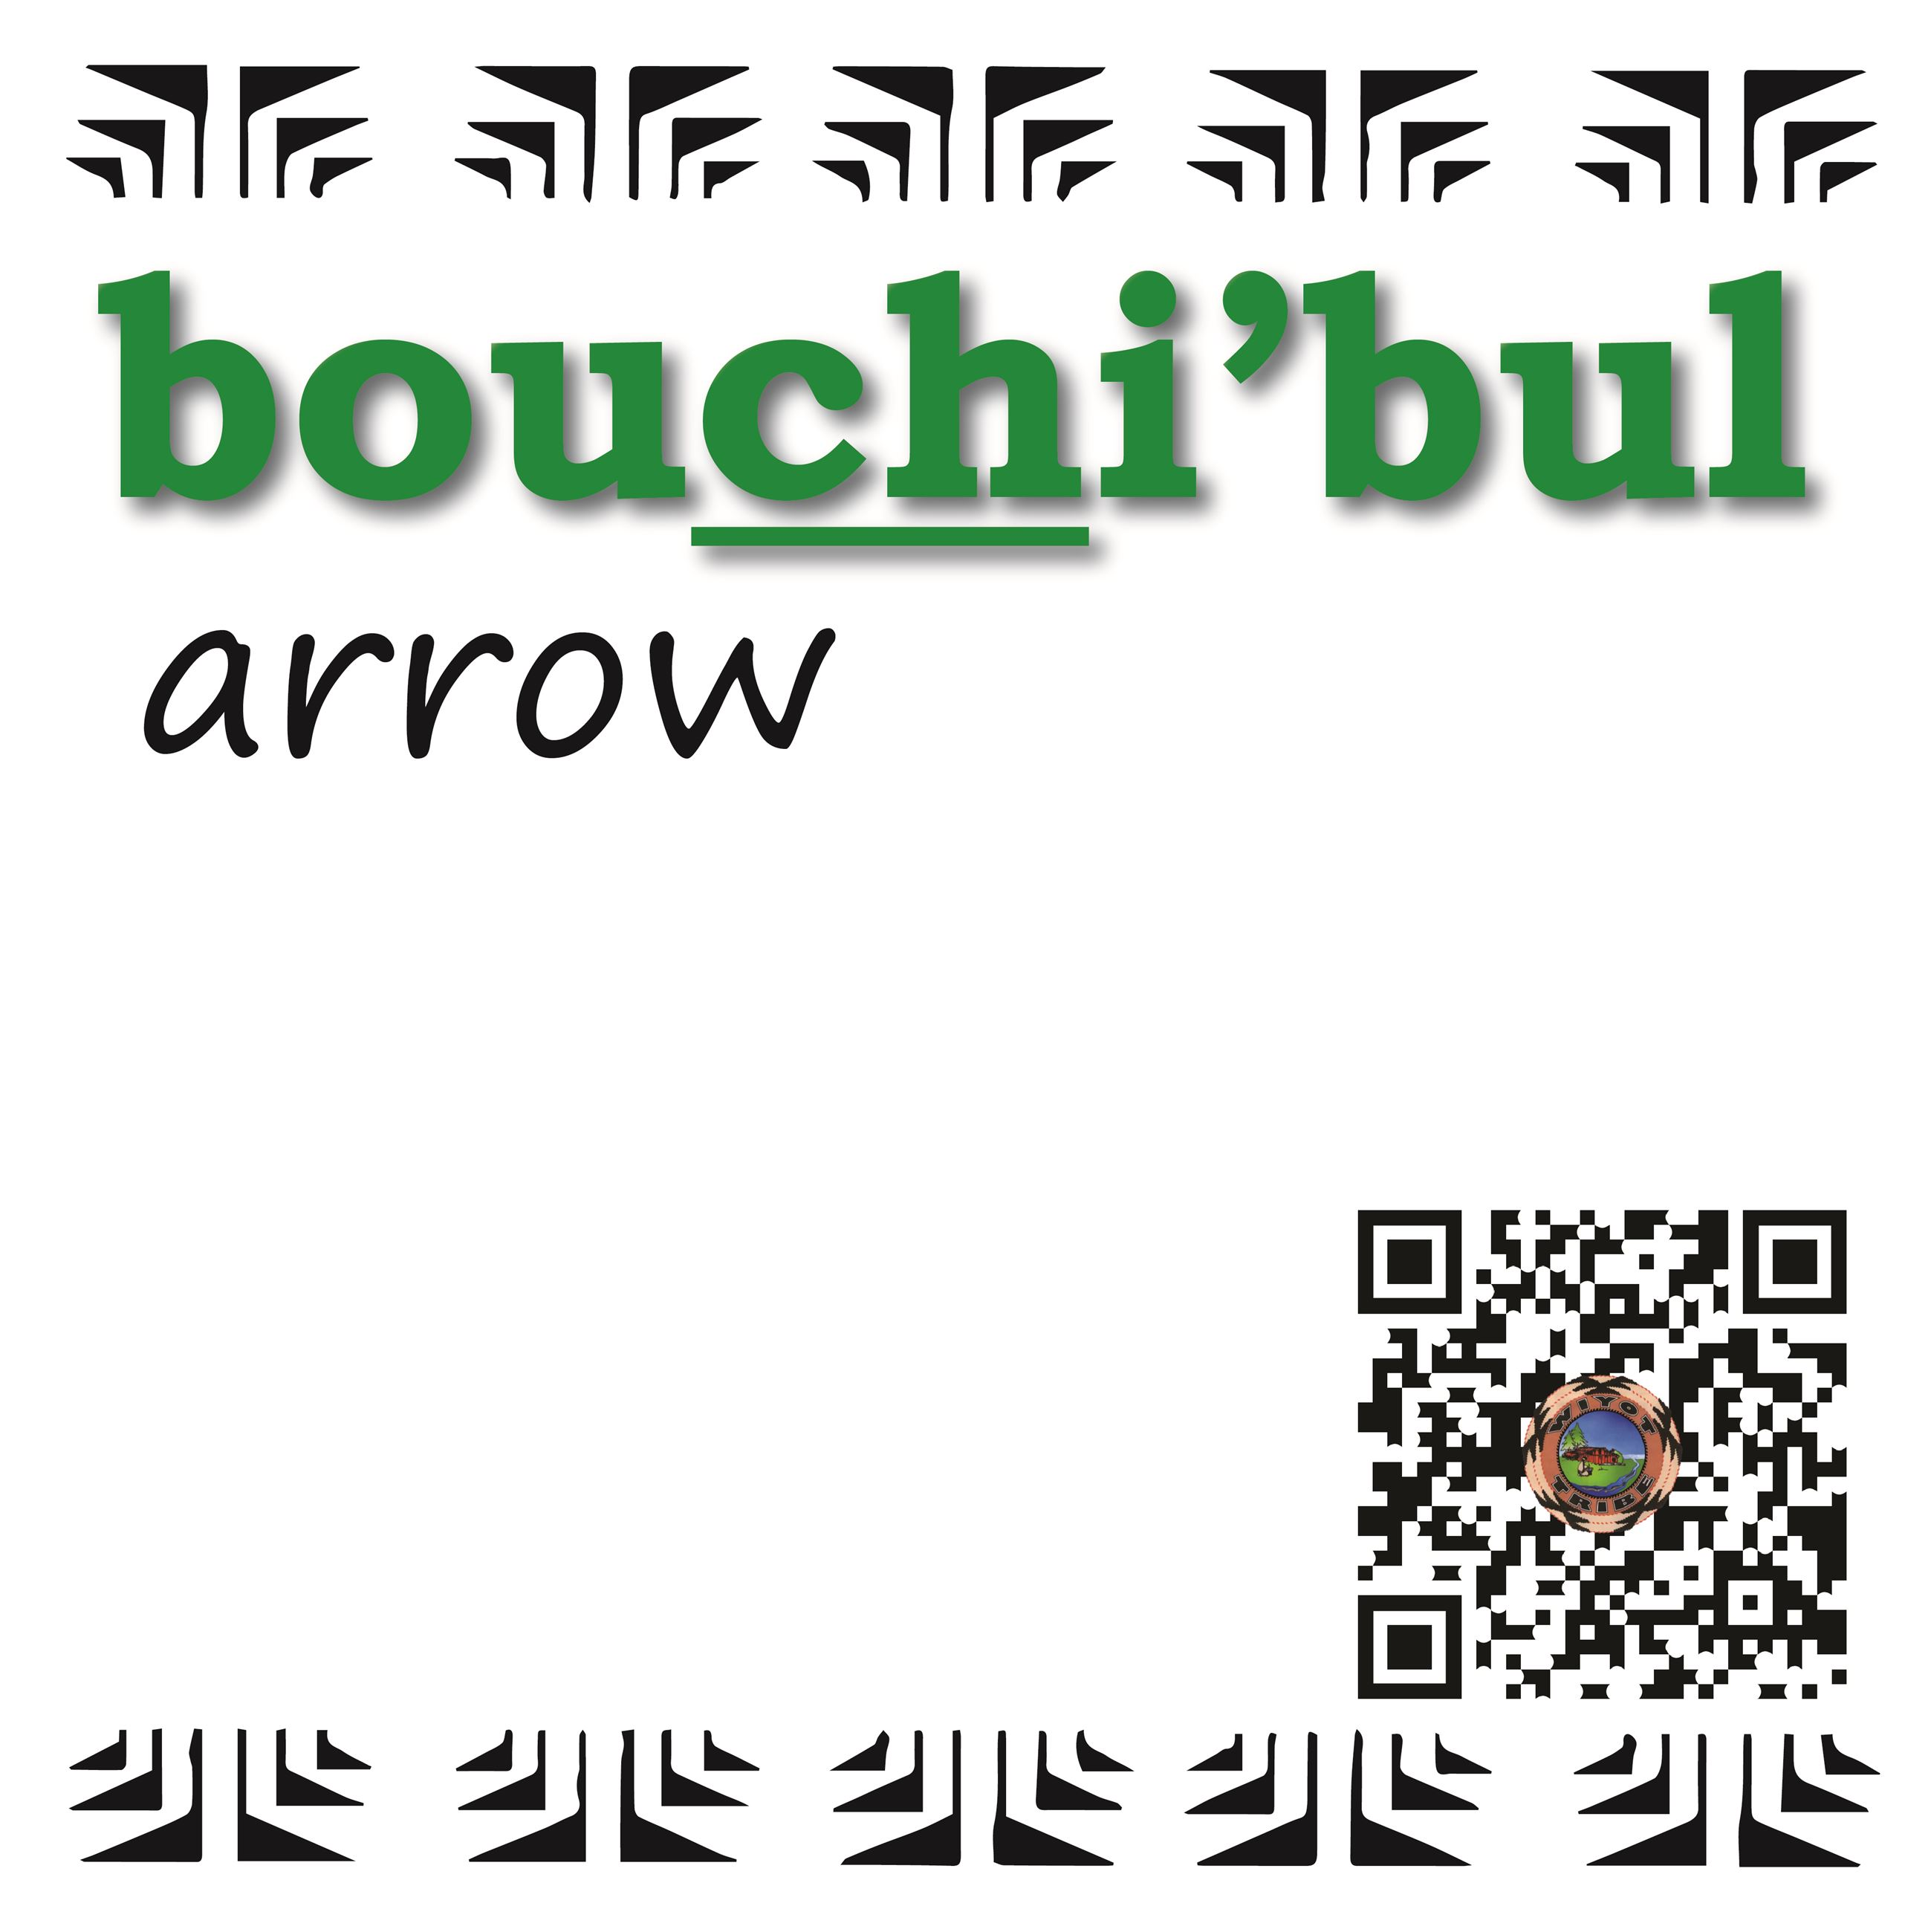 bouchi'bul (arrow)